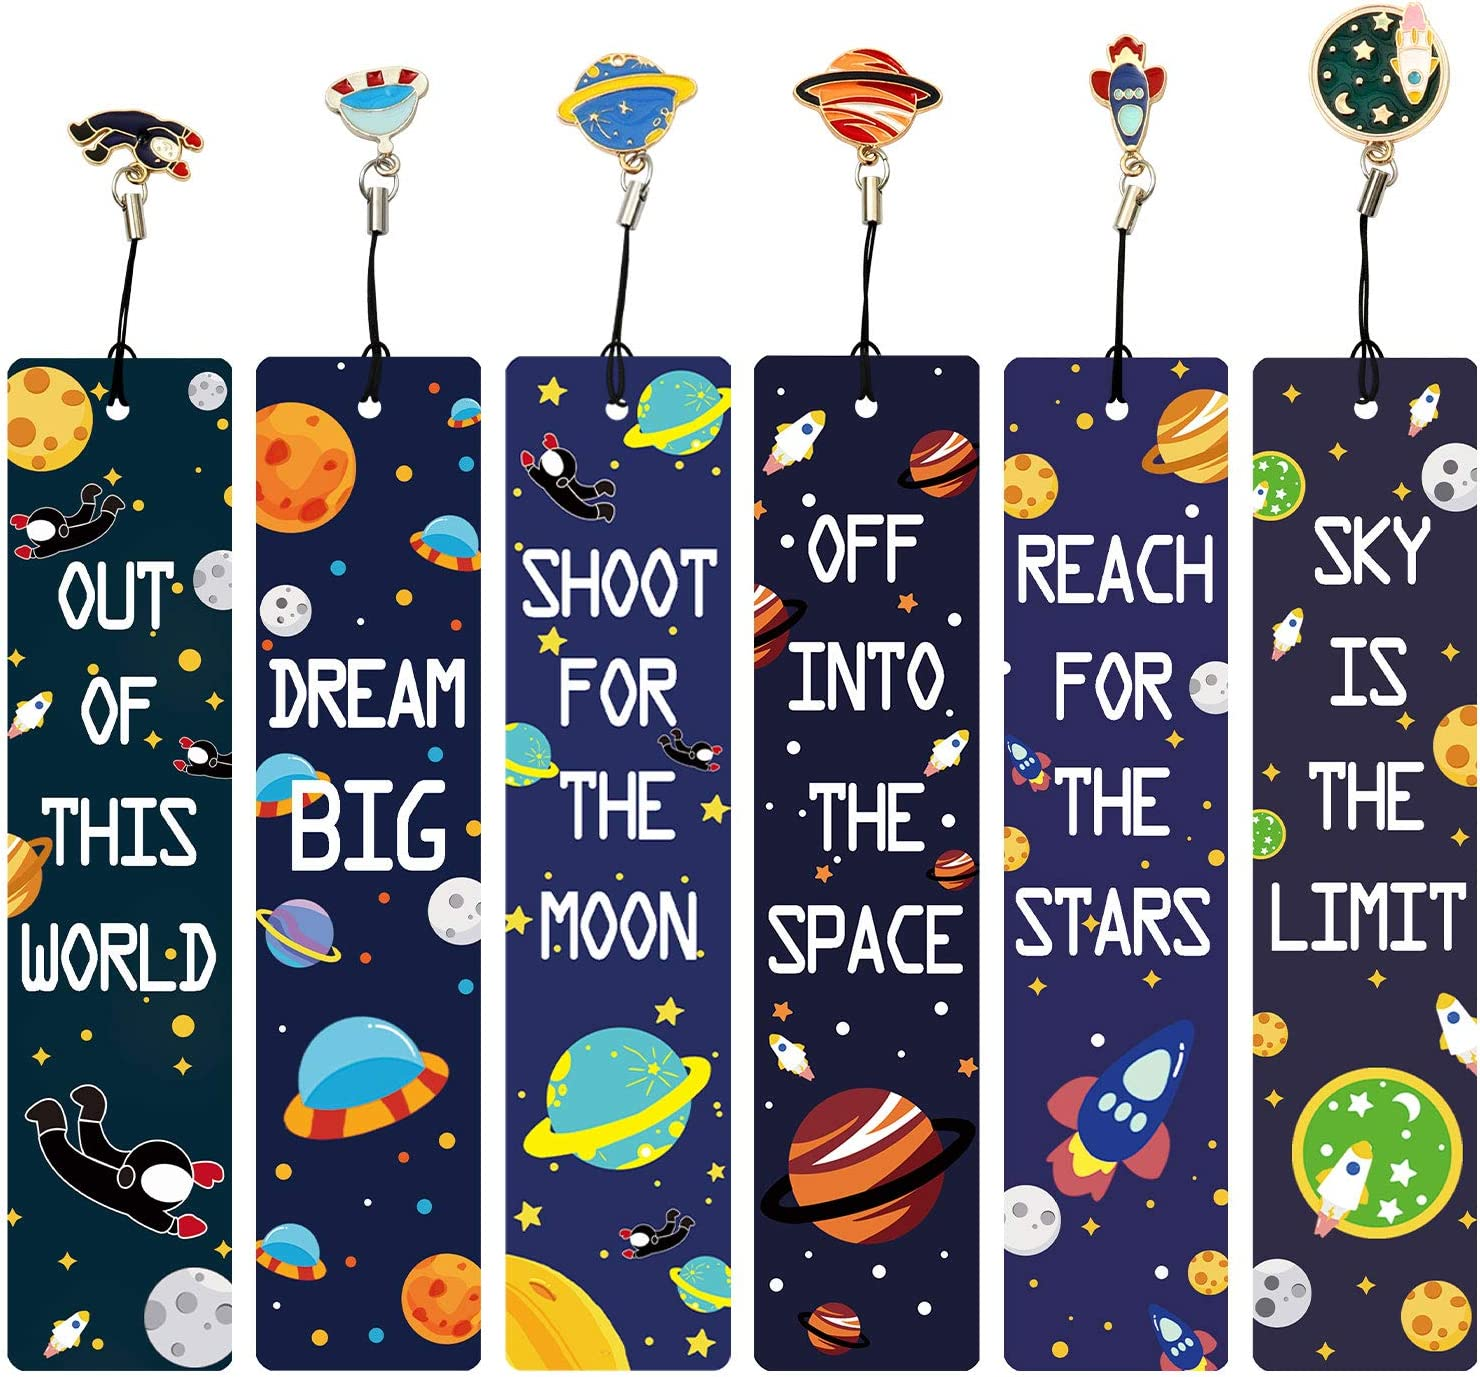 Inspirational Quotes Bookmarker for Men and Women Gifts for Kids Boys Girls Adults 12 Pcs Space Theme Bookmarks with Metal Charms Excellent Party Favors School Classroom Prize Reading Rewards